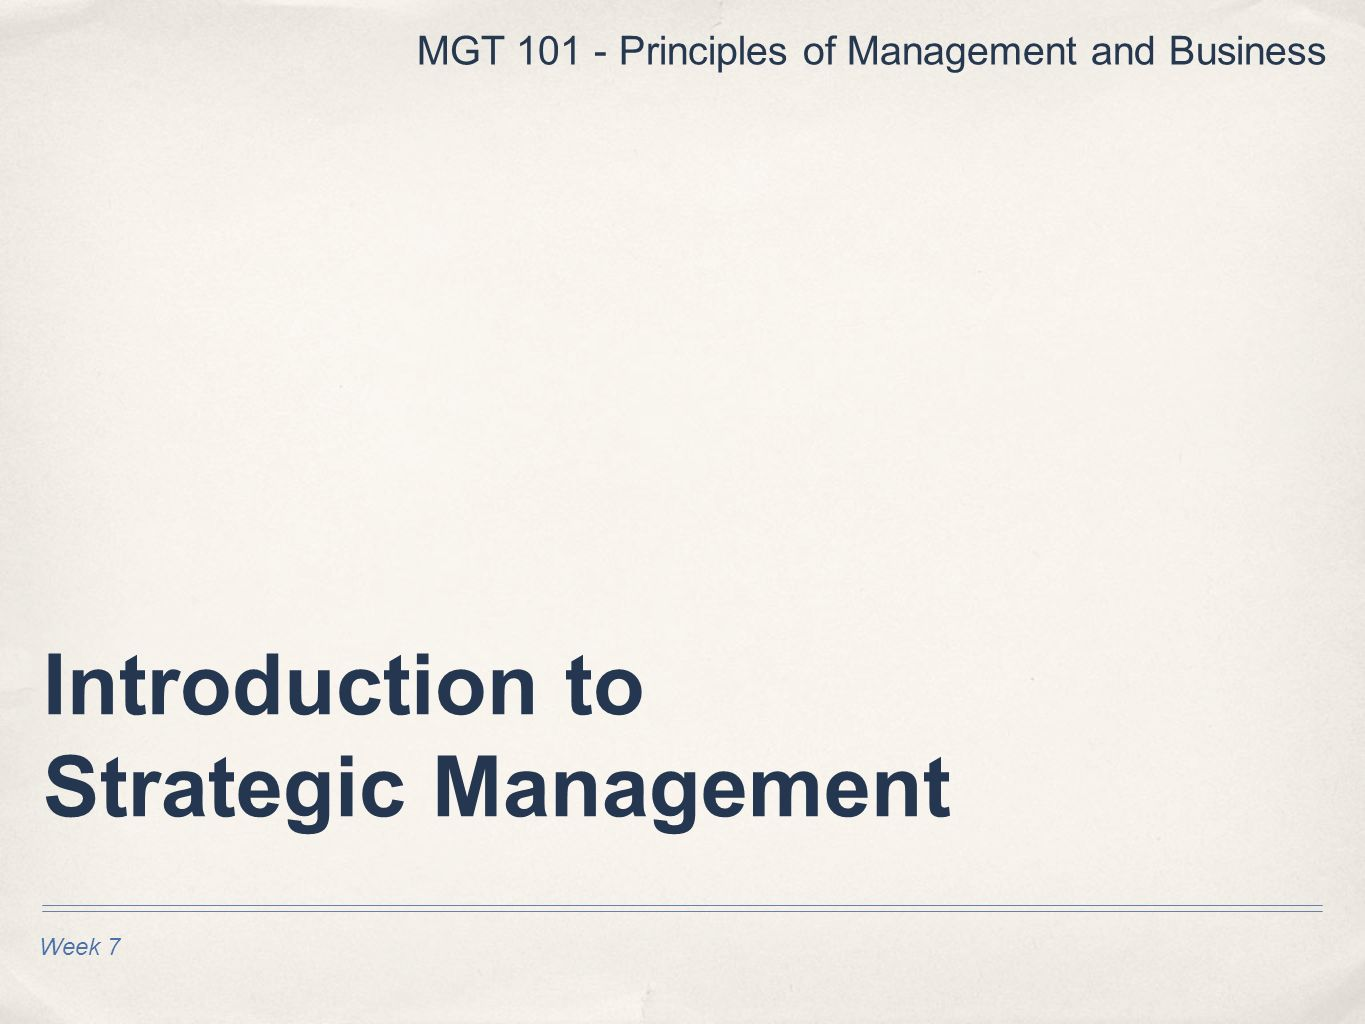 mgt 599 slp 1 strategic management Mgt 599 week 10 project deliverable 5 combine all previous documentation for project deliverables 1-4 in which you provide all aspects of the strategic management.